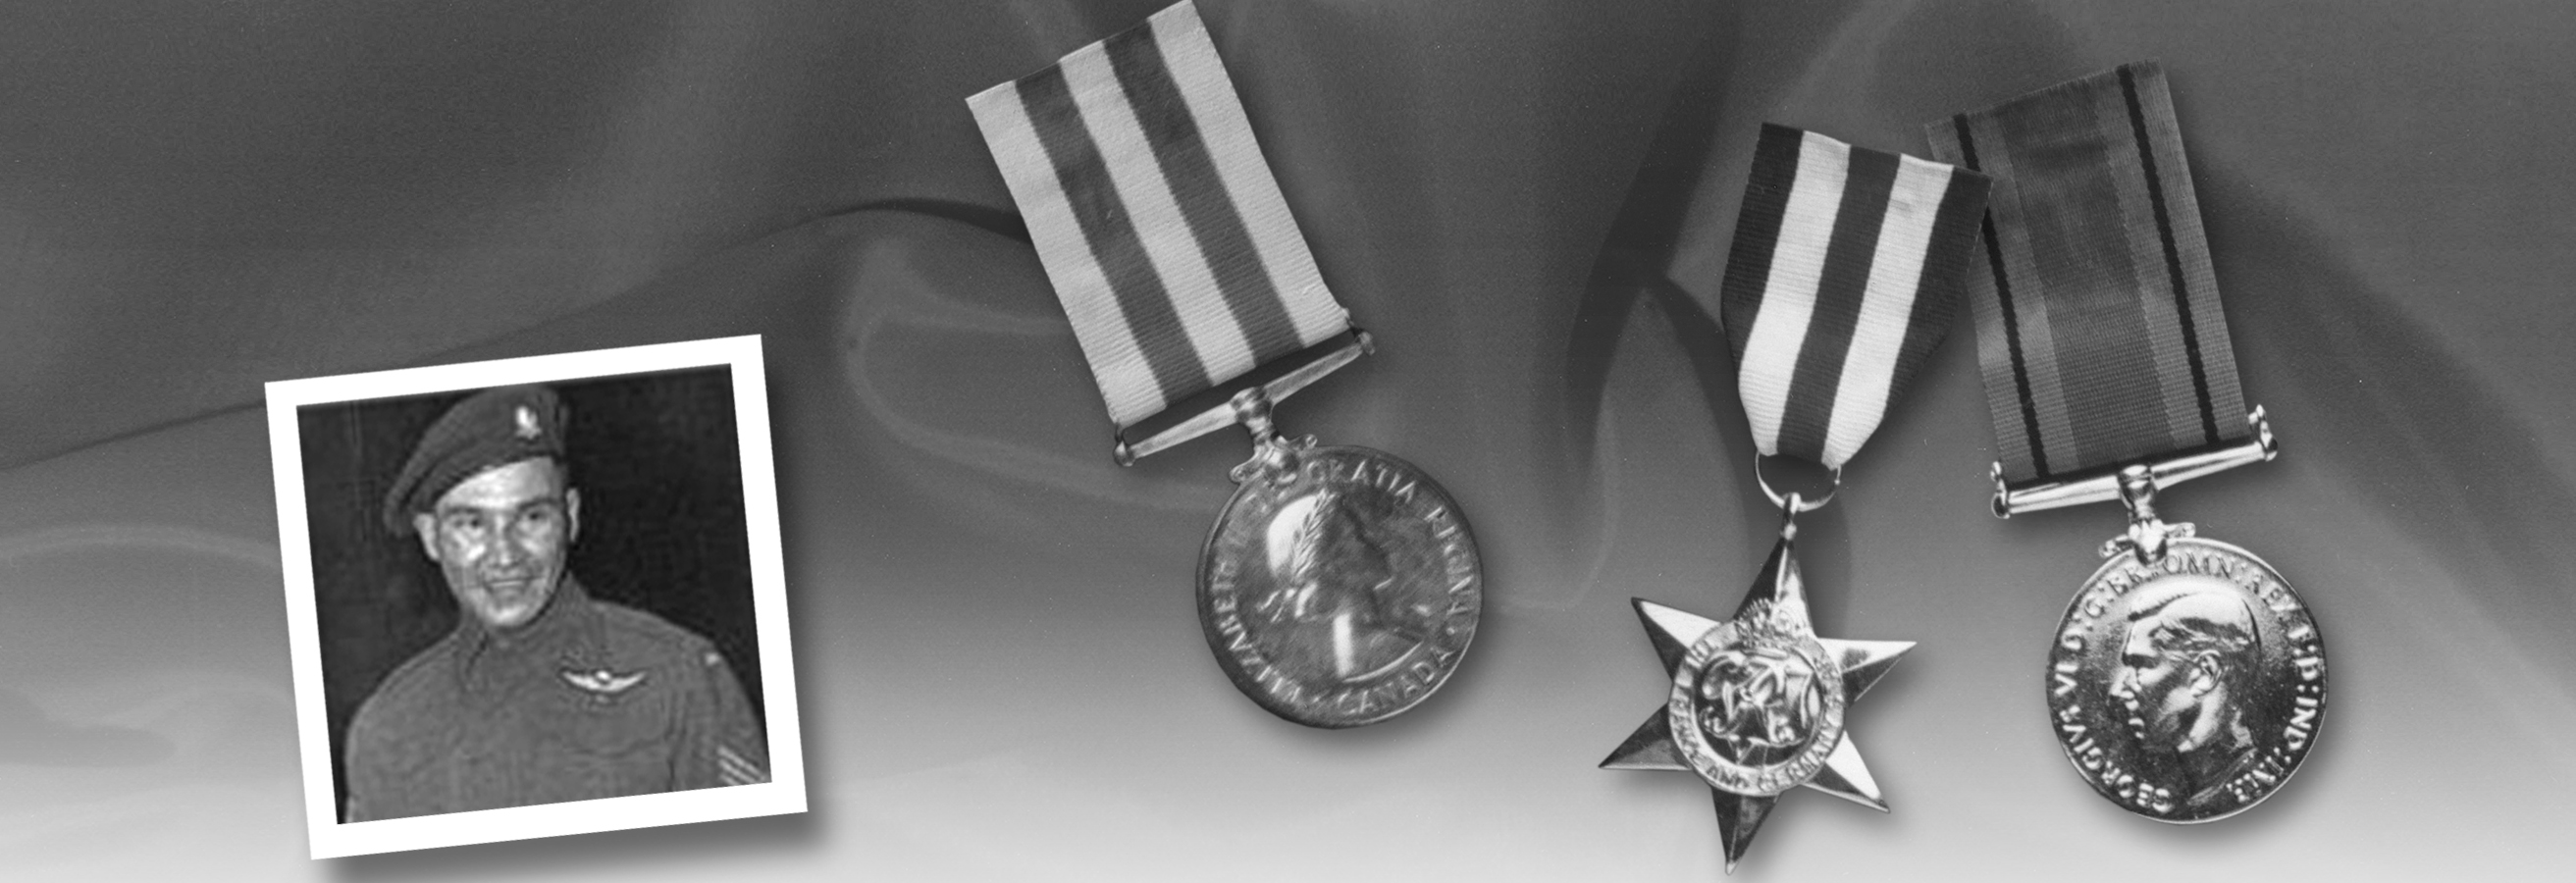 Sgt. Tommy Prince with Military Medal which he received during an investiture at Buckingham Palace. 12 February 1945 / London, England.